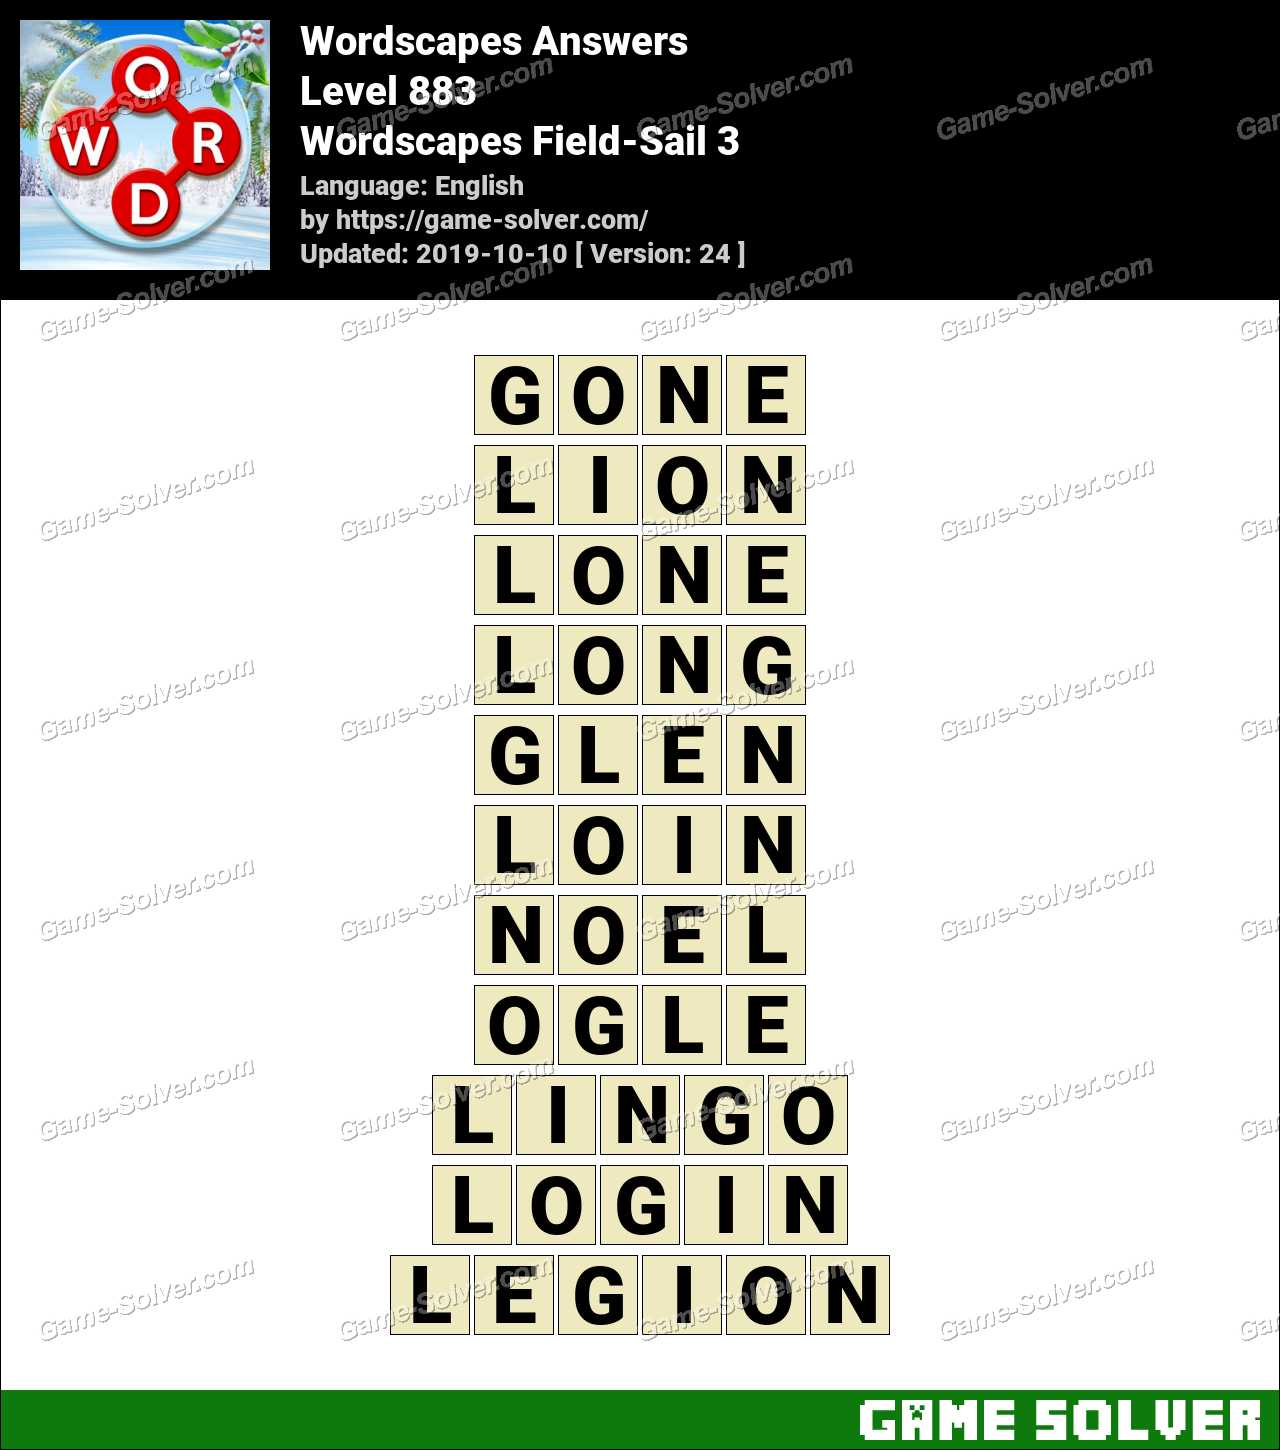 Wordscapes Field-Sail 3 Answers